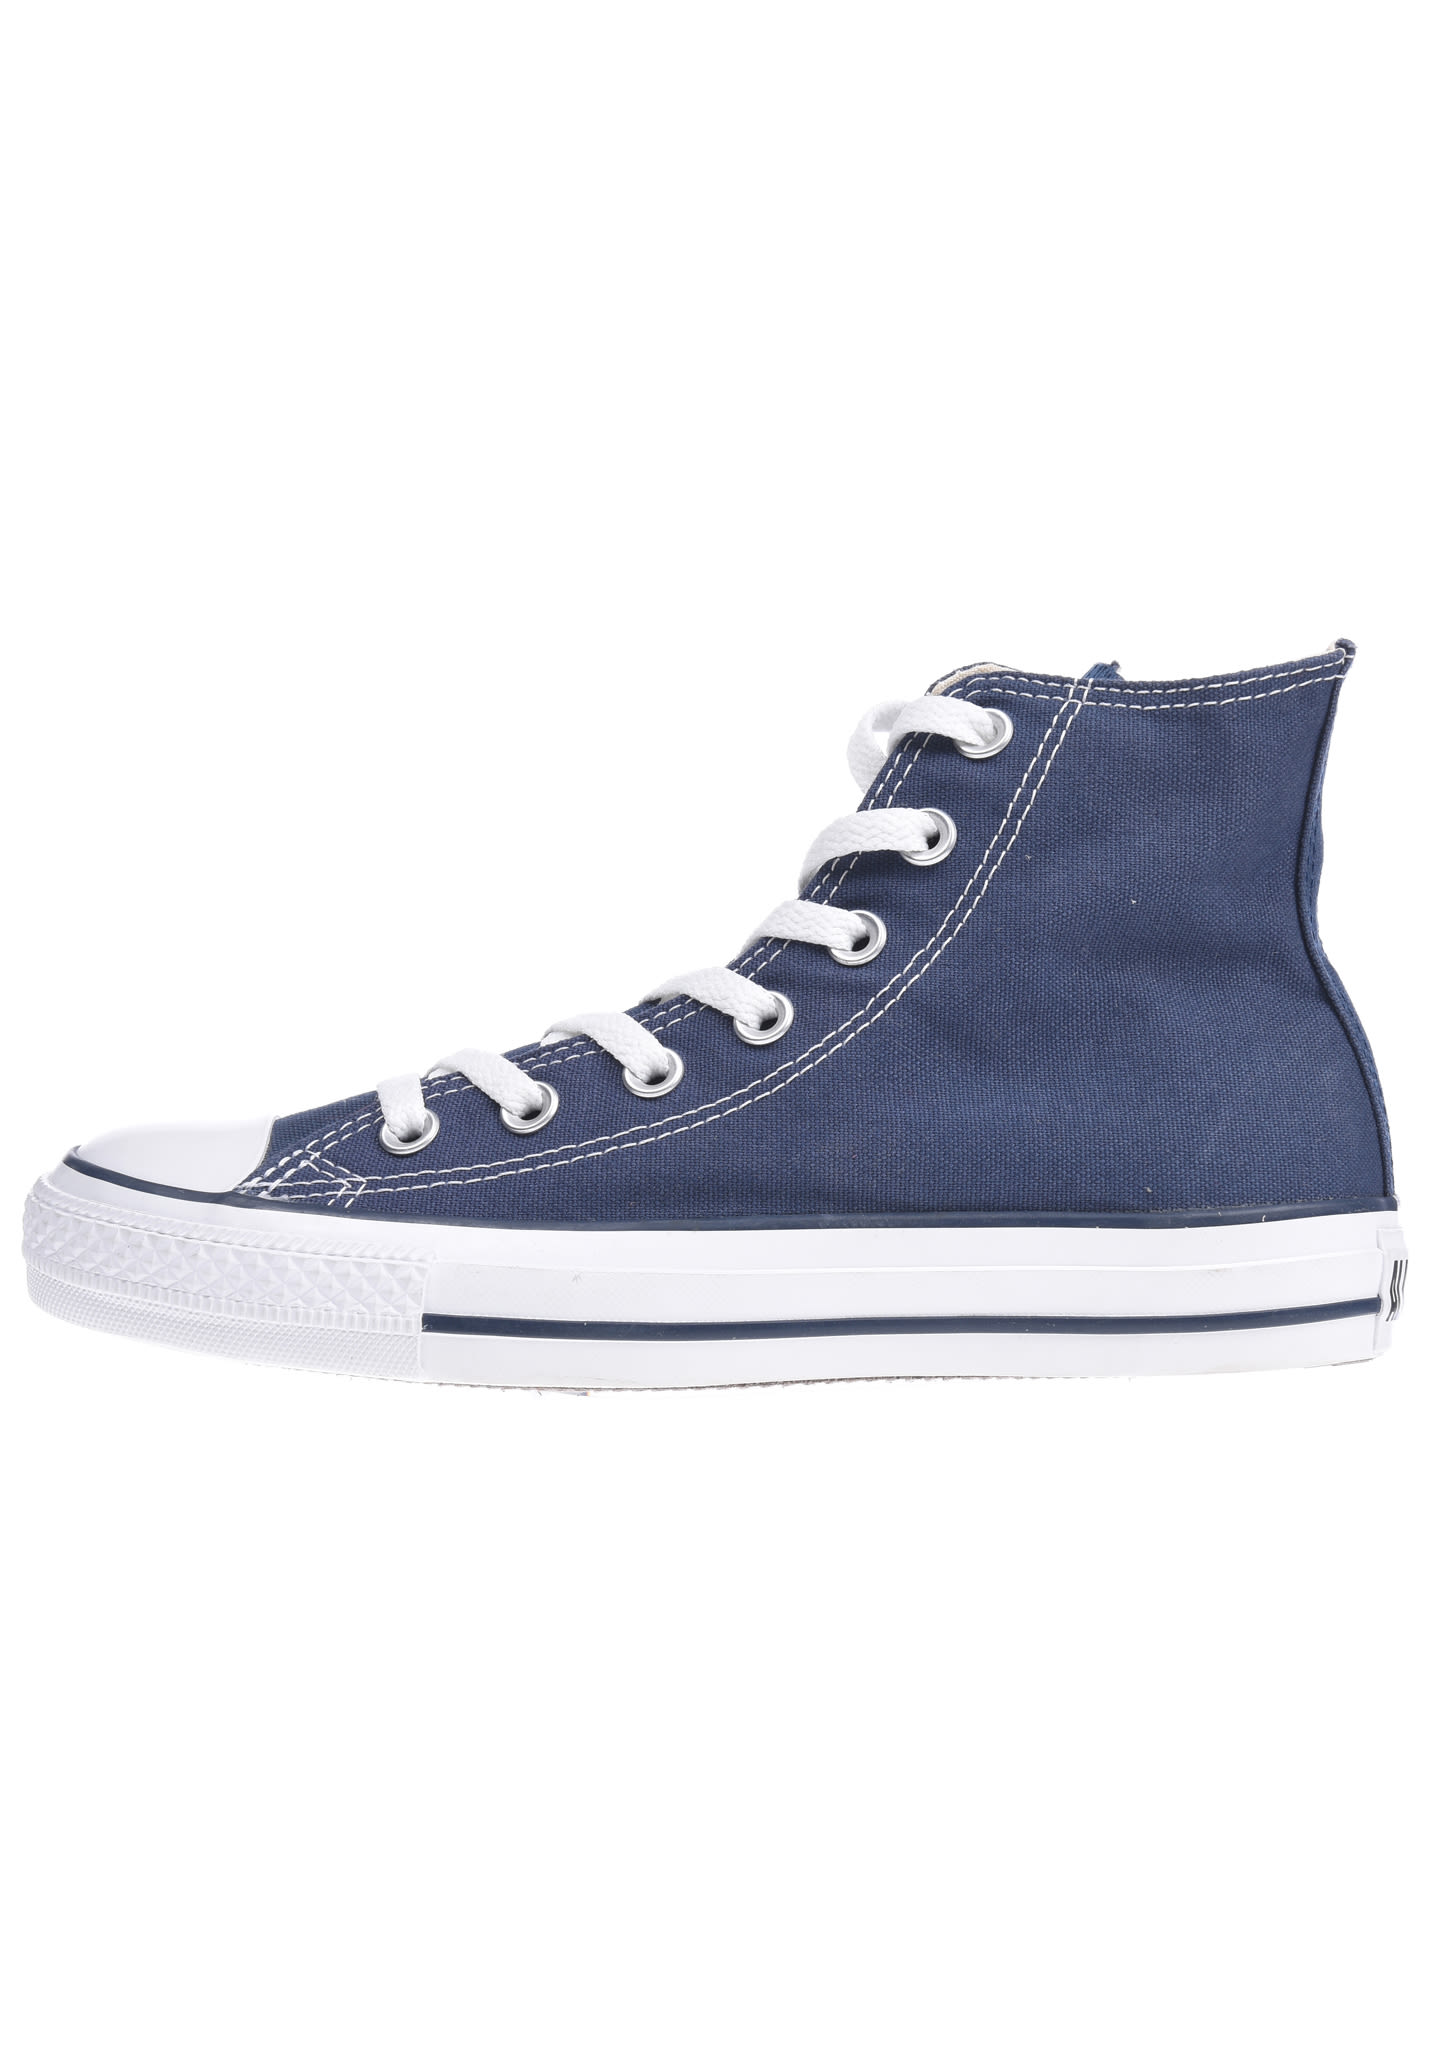 4a5d2f6010f Converse All Star Hi - Sneakers - Blauw - Planet Sports